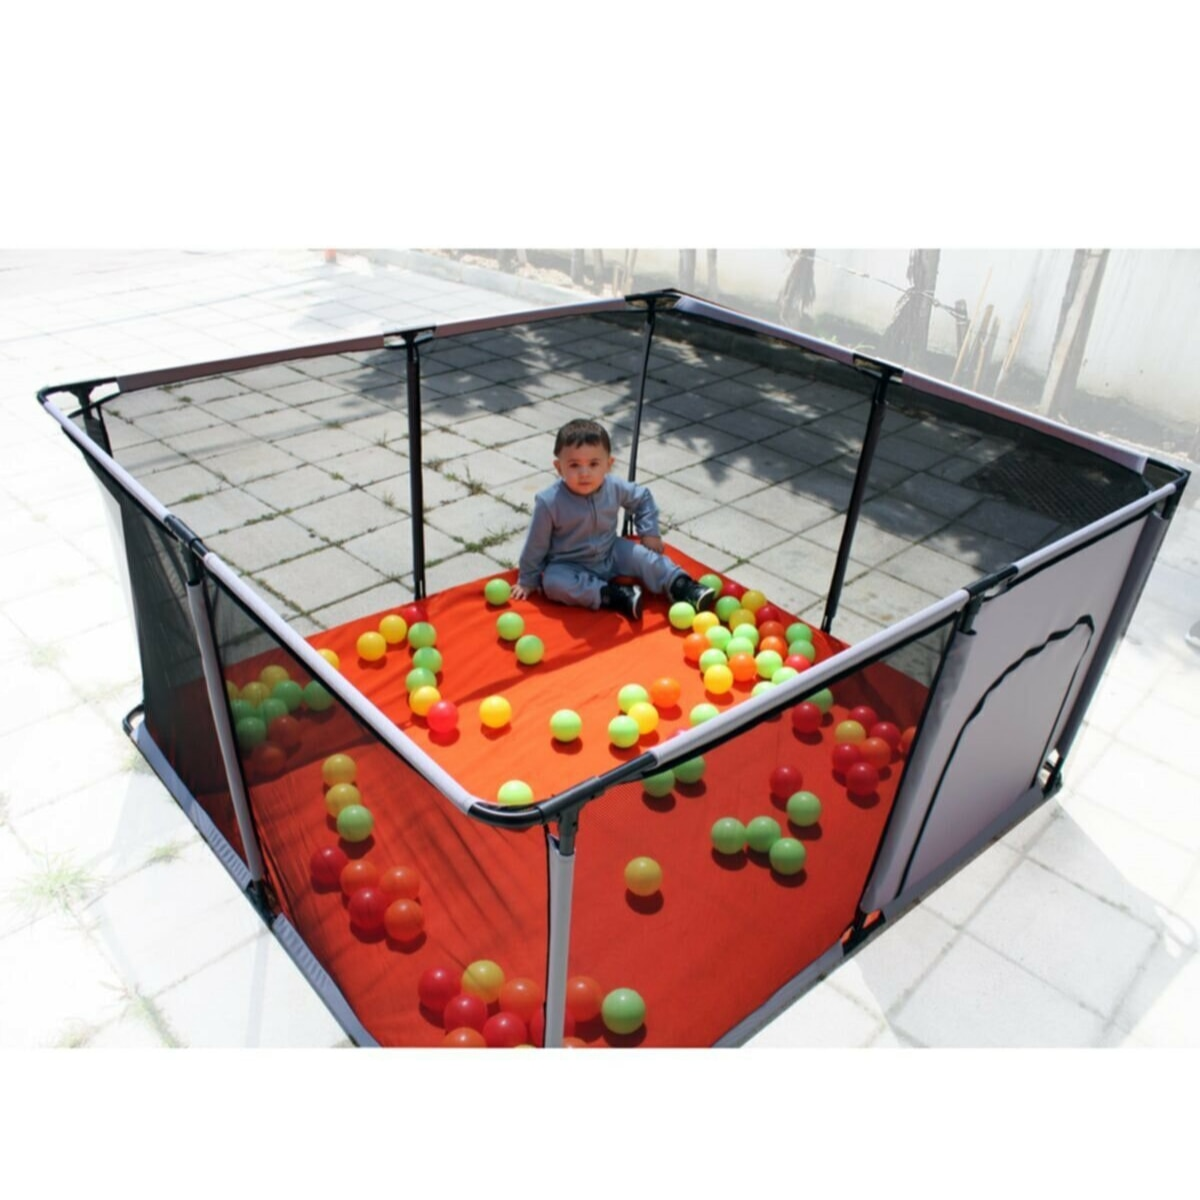 TurQuality Portable Baby Playpens Playing Zone Toddler Gaming Area 6 months ~ 6 Years Old Kids Soft Play Indoor Playground Pit safety Fence Yard  Baby Toys Pool Boys Girls Unisex Parents Mother Mommy Free Dropshinping